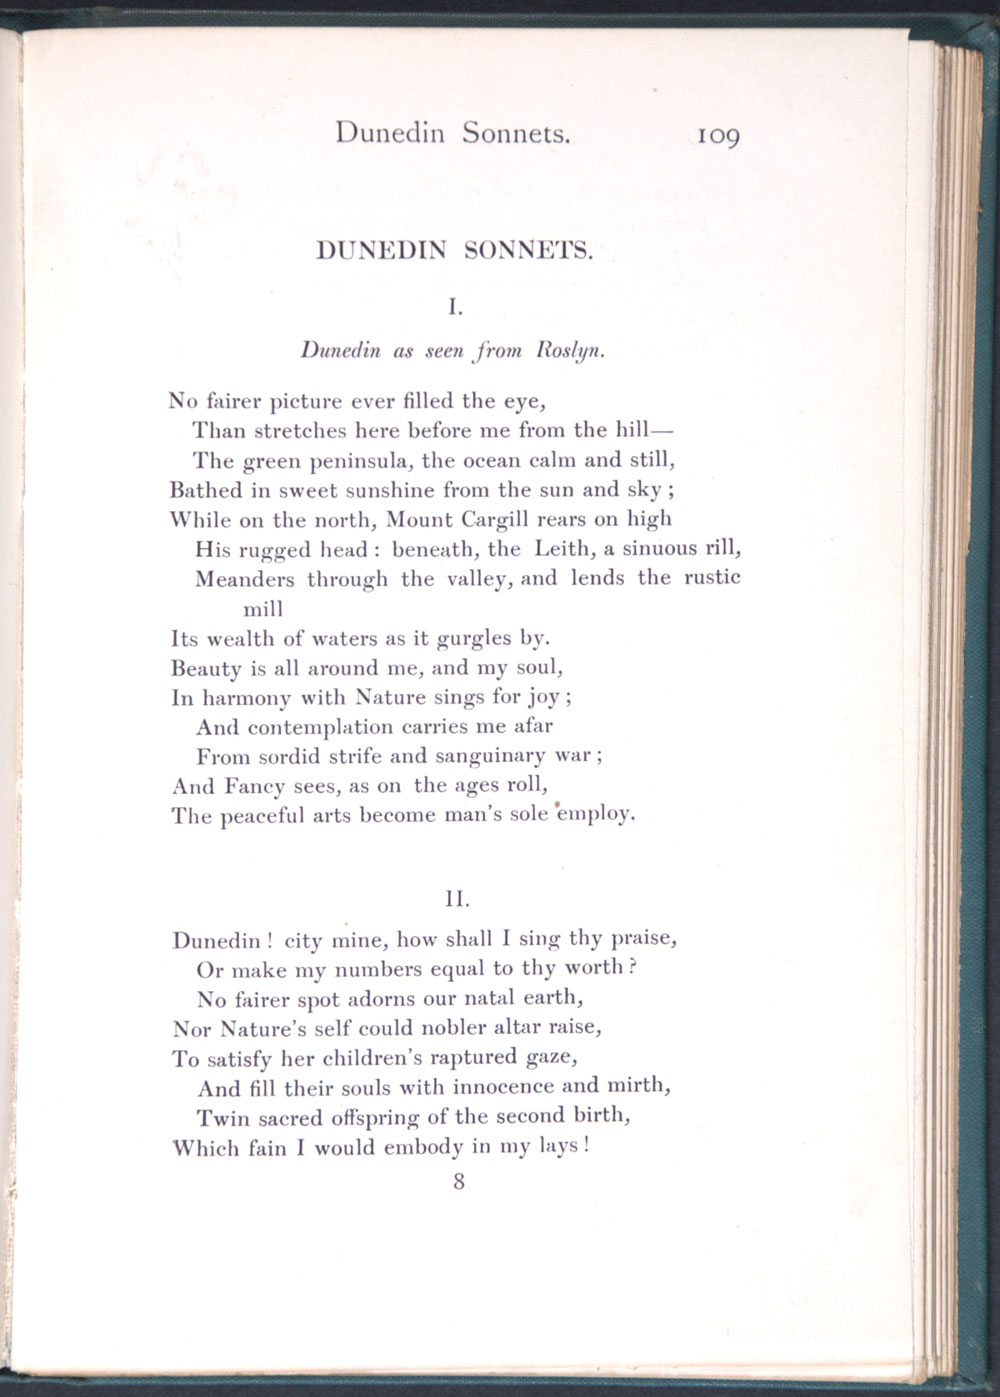 William M. Stenhouse. <em>Lays from Maoriland: being songs and poems, Scottish and English.</em> Paisley: Alexander Gardner, 1908.